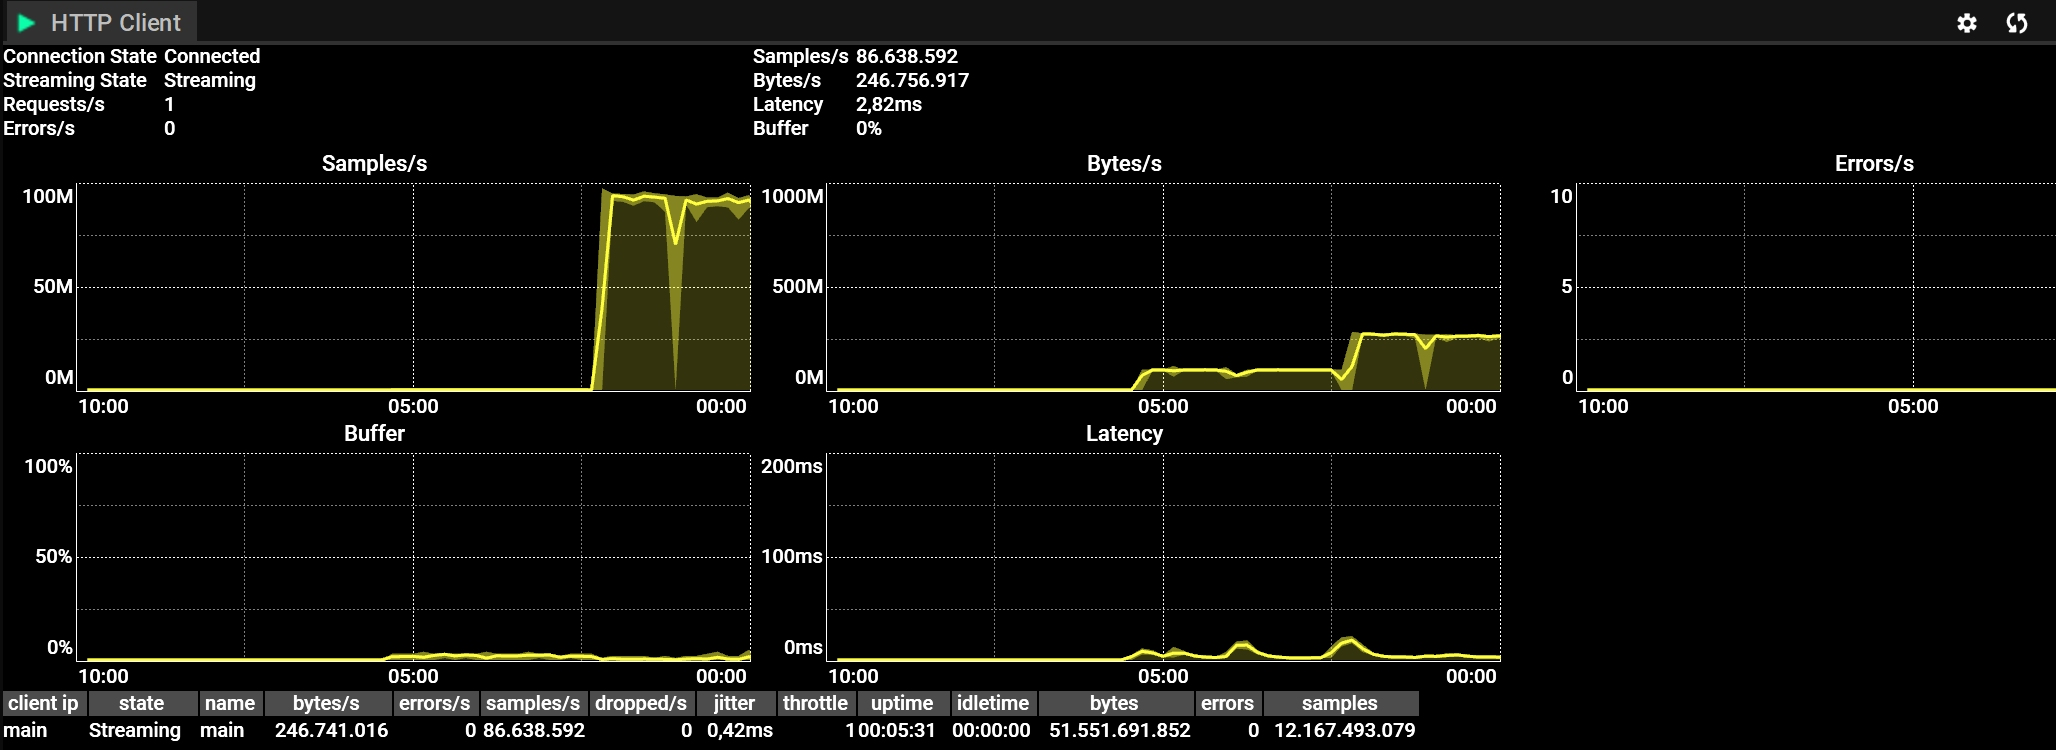 HTTP Client with Bytes/s graph